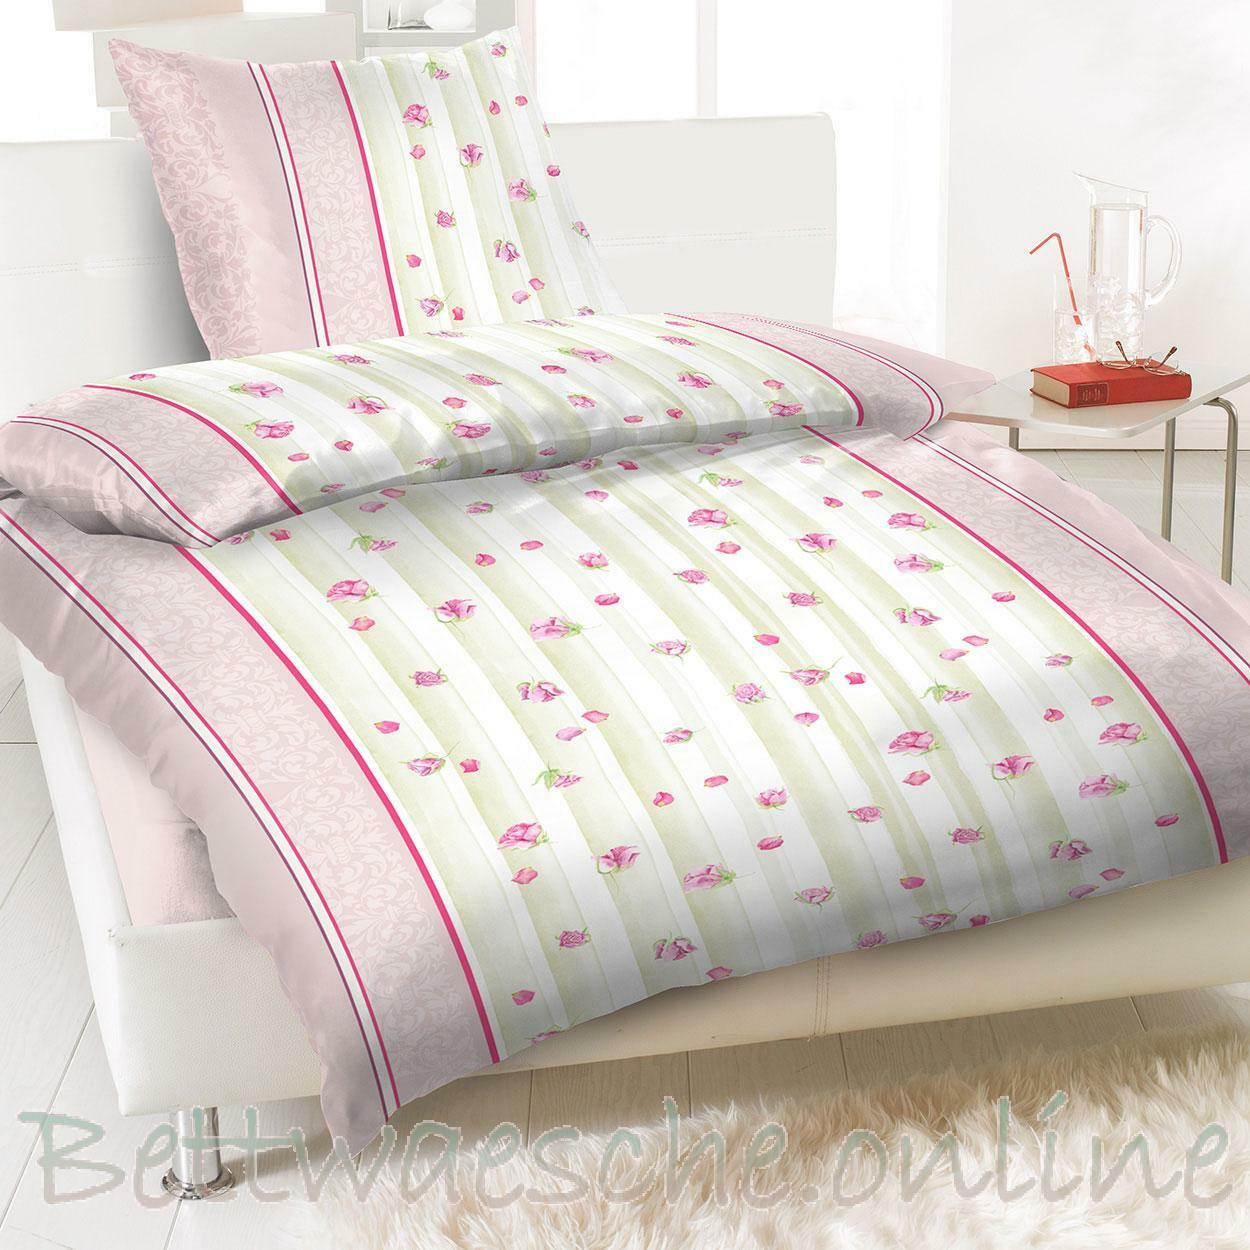 baumwolle renforce bettw sche 4 teilig 135x200 cm floral rosa eur 14 95 picclick de. Black Bedroom Furniture Sets. Home Design Ideas